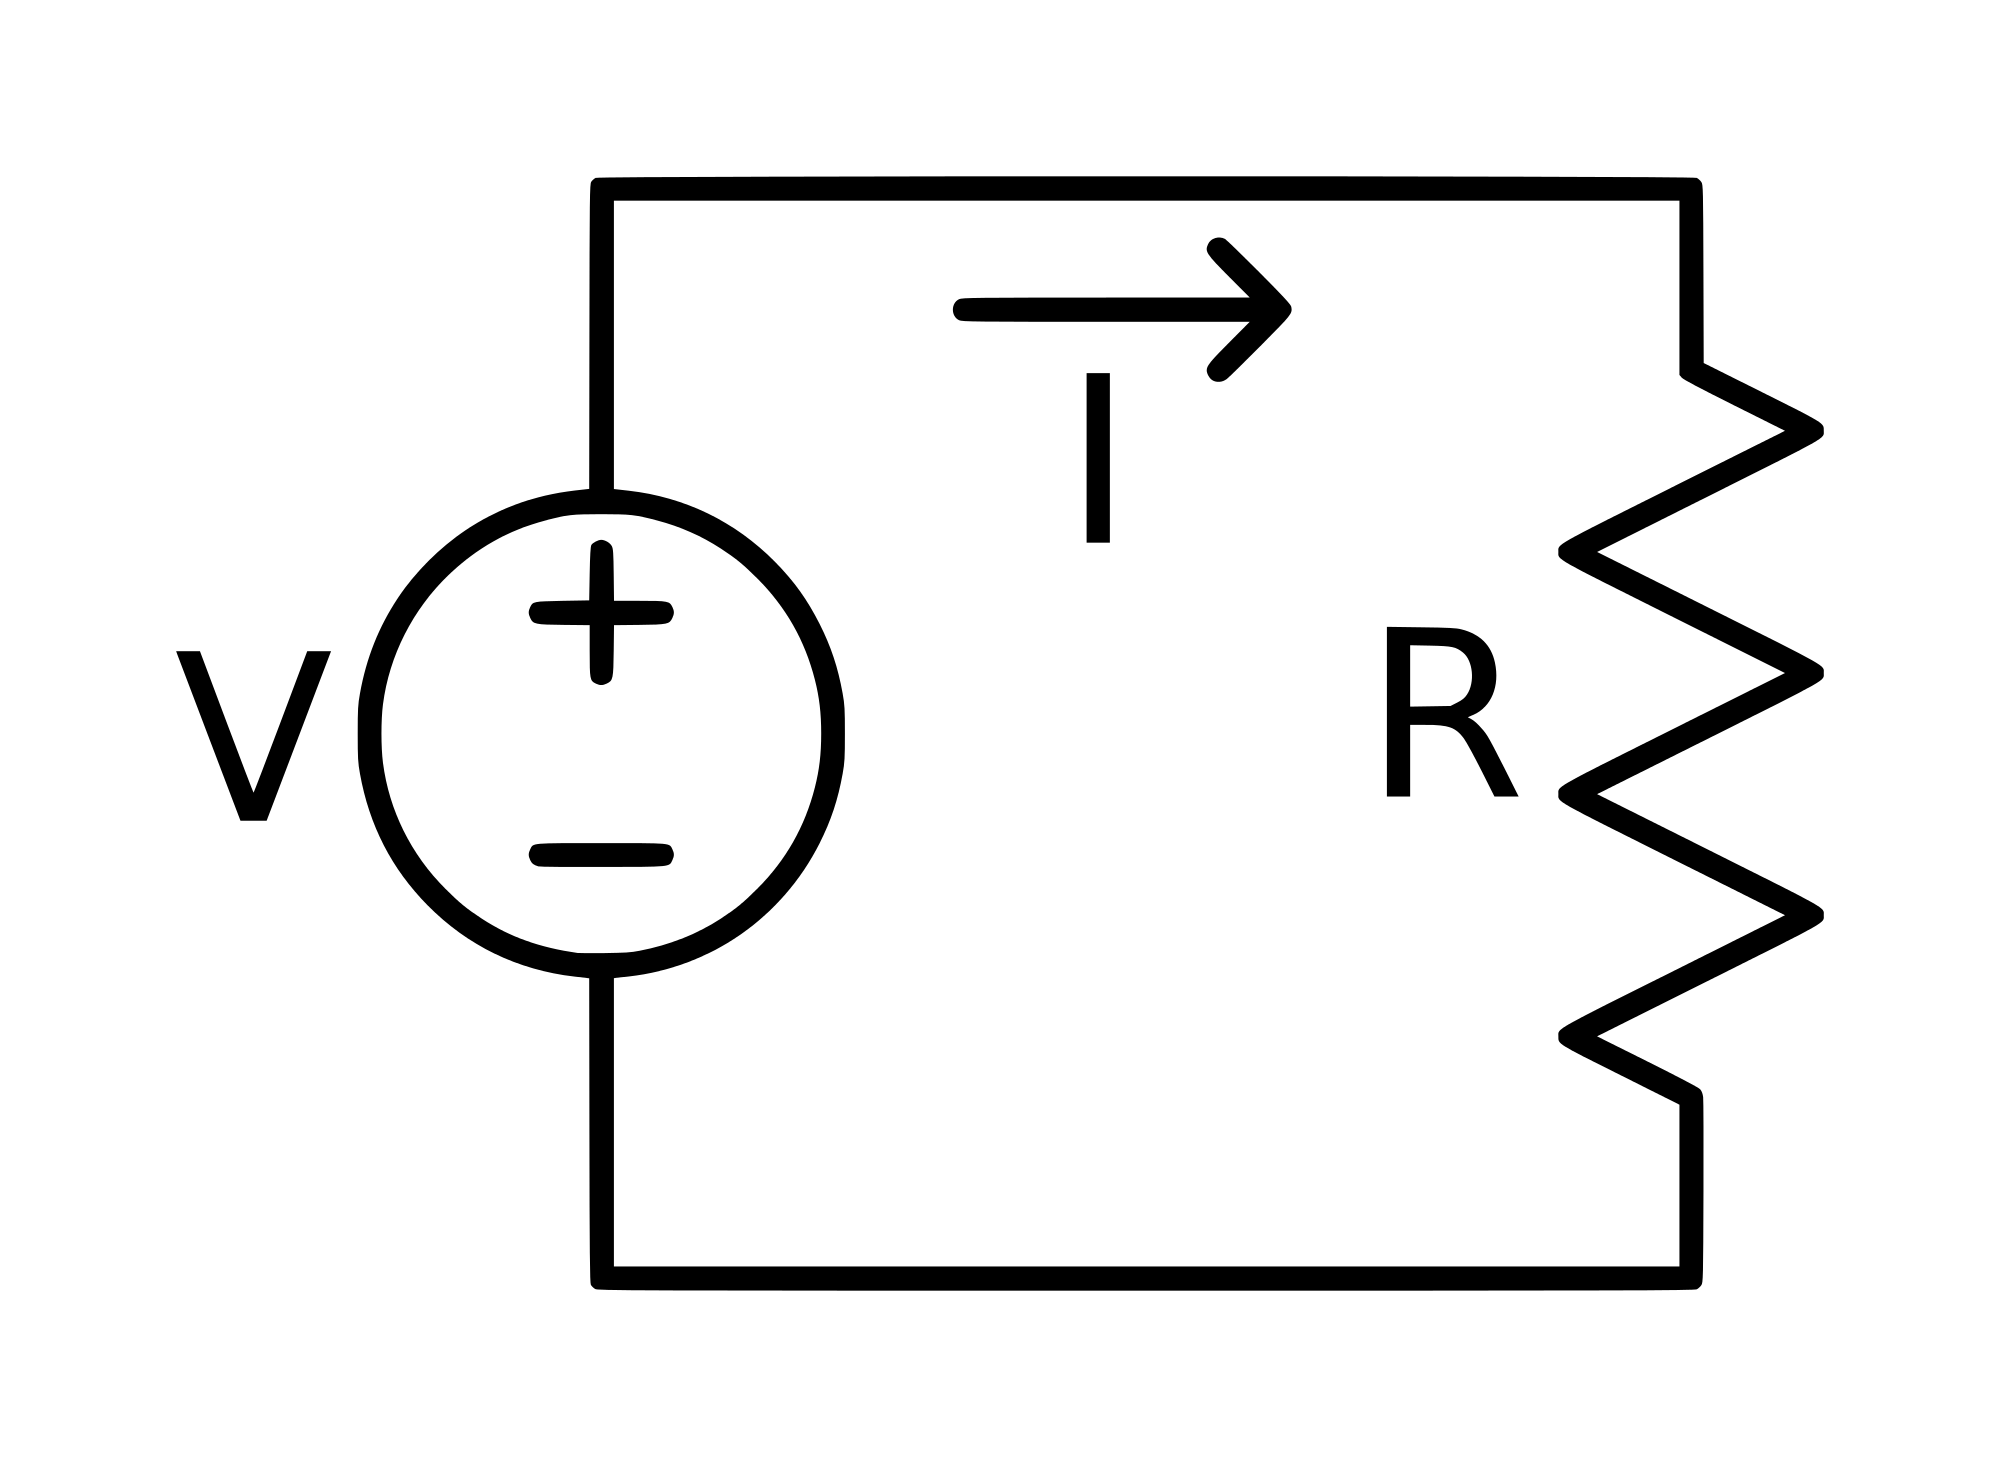 symbols of electrical circuits